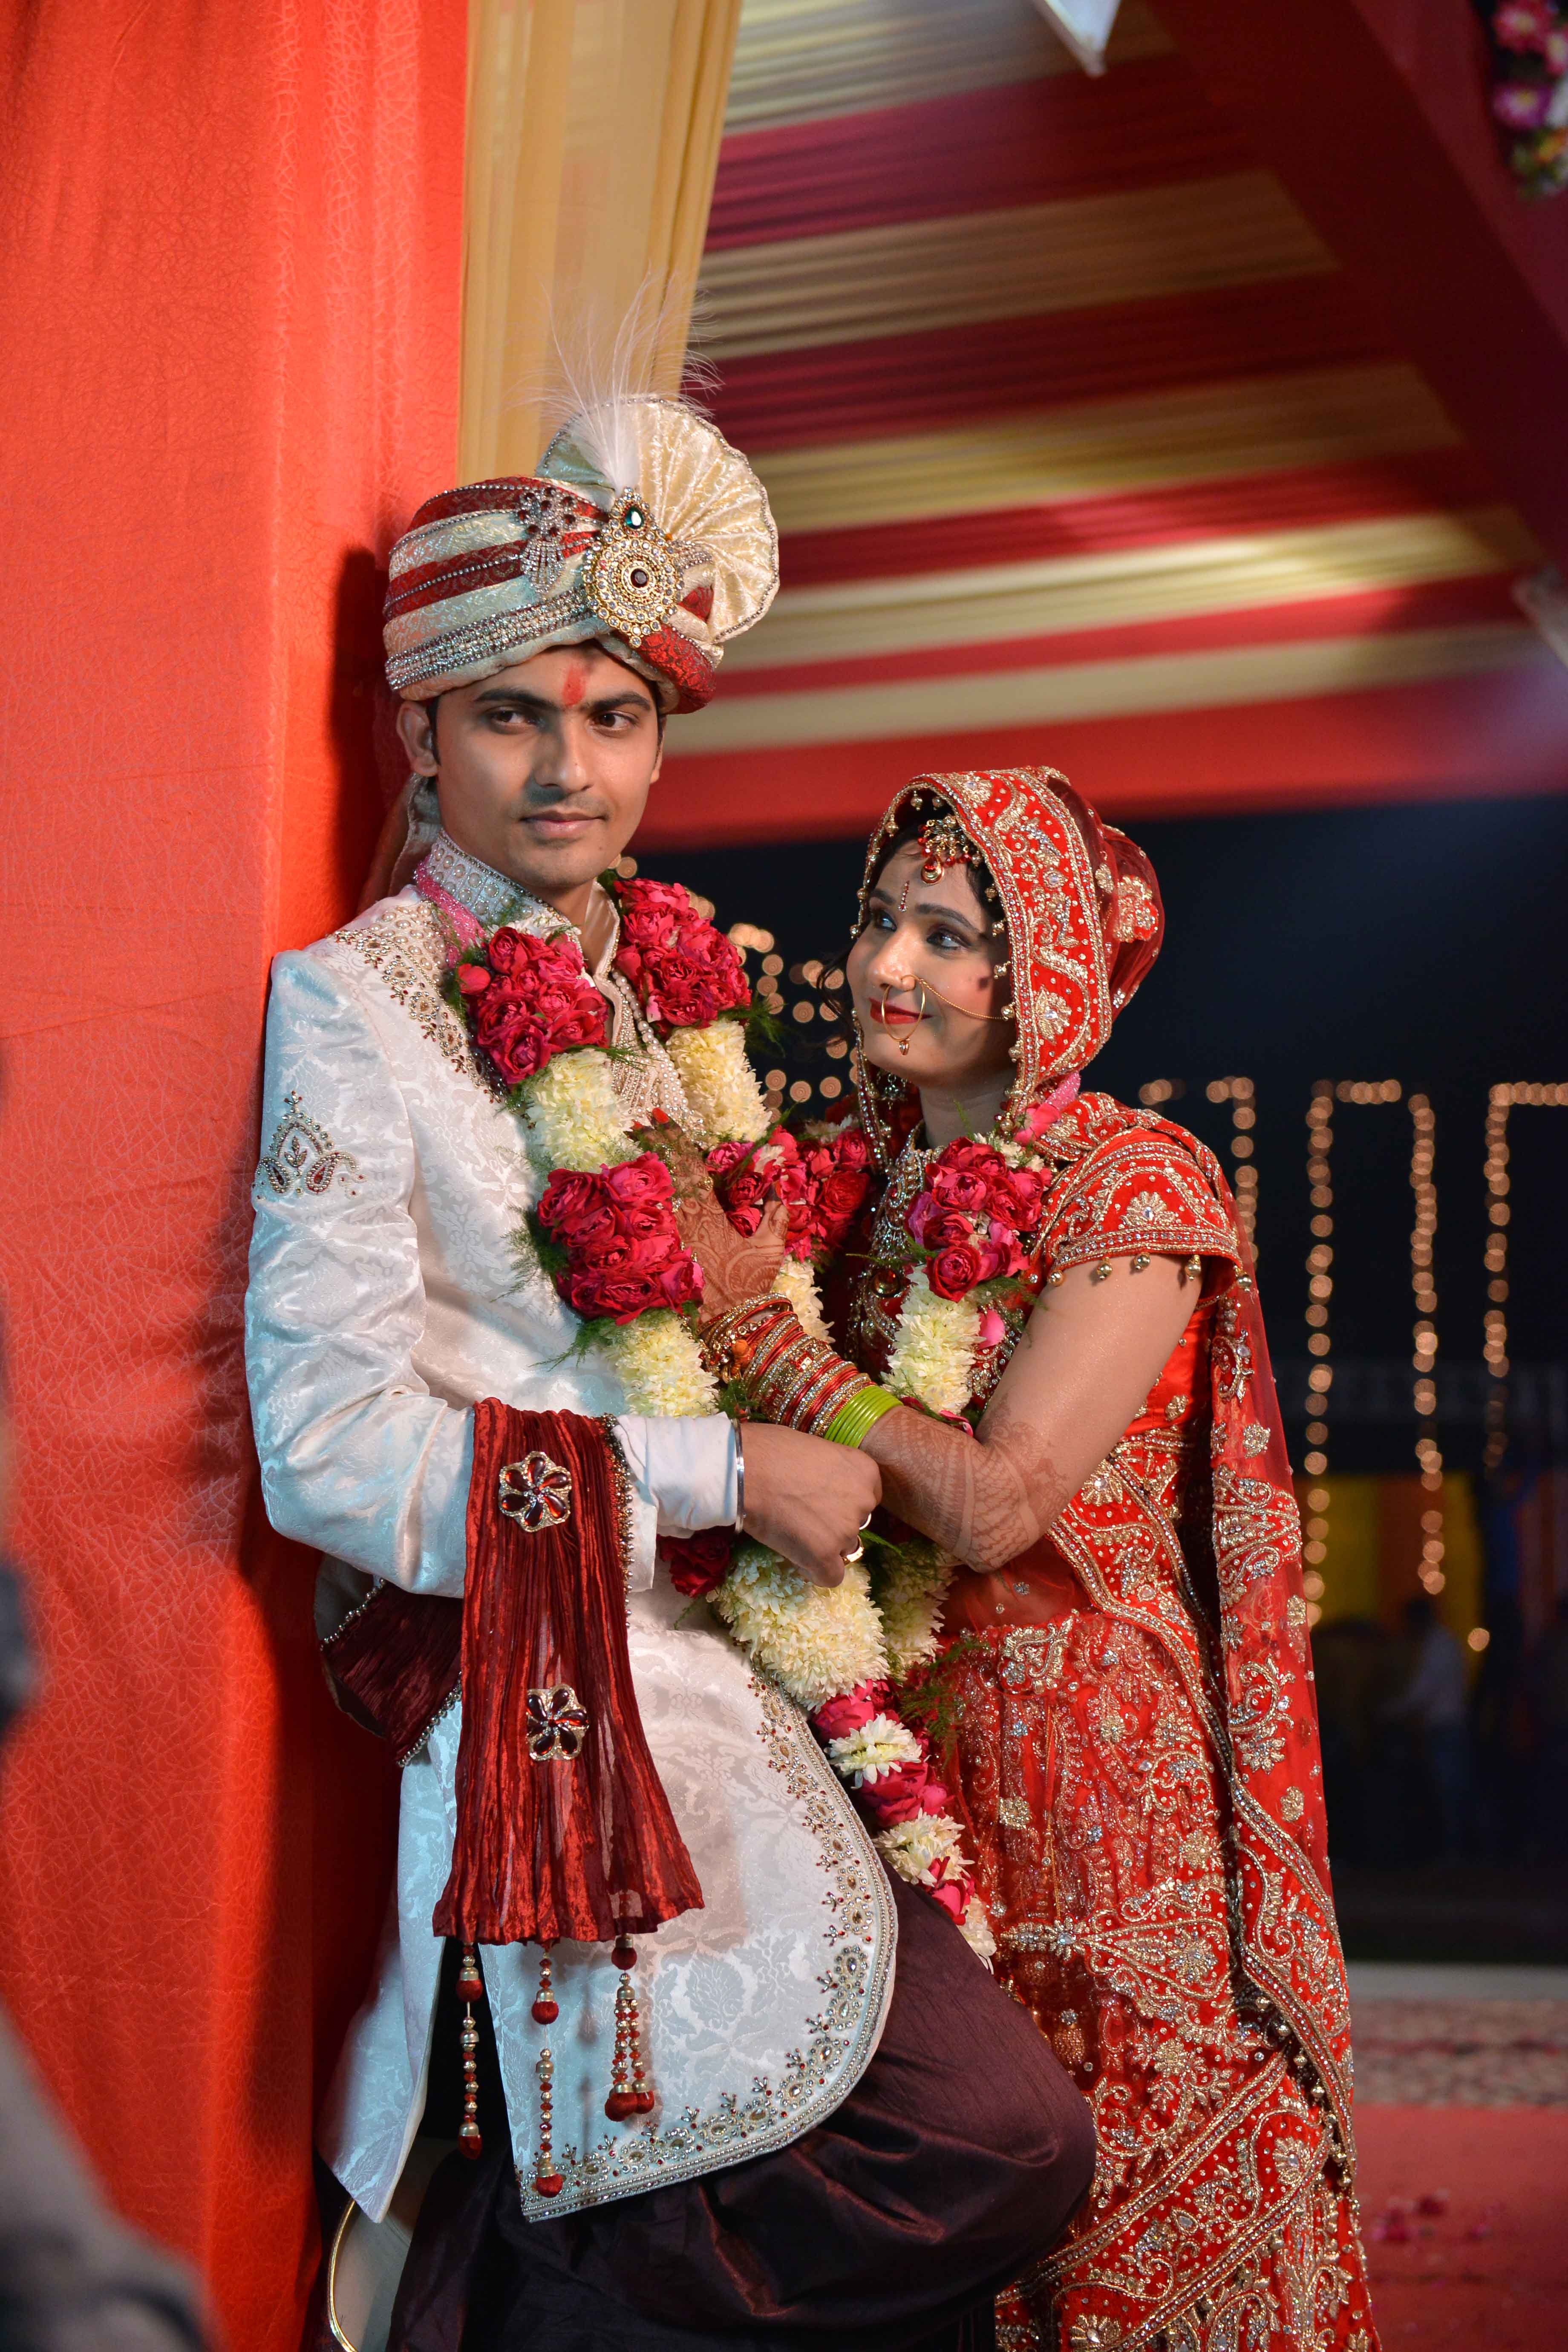 shilpi and sameer love story